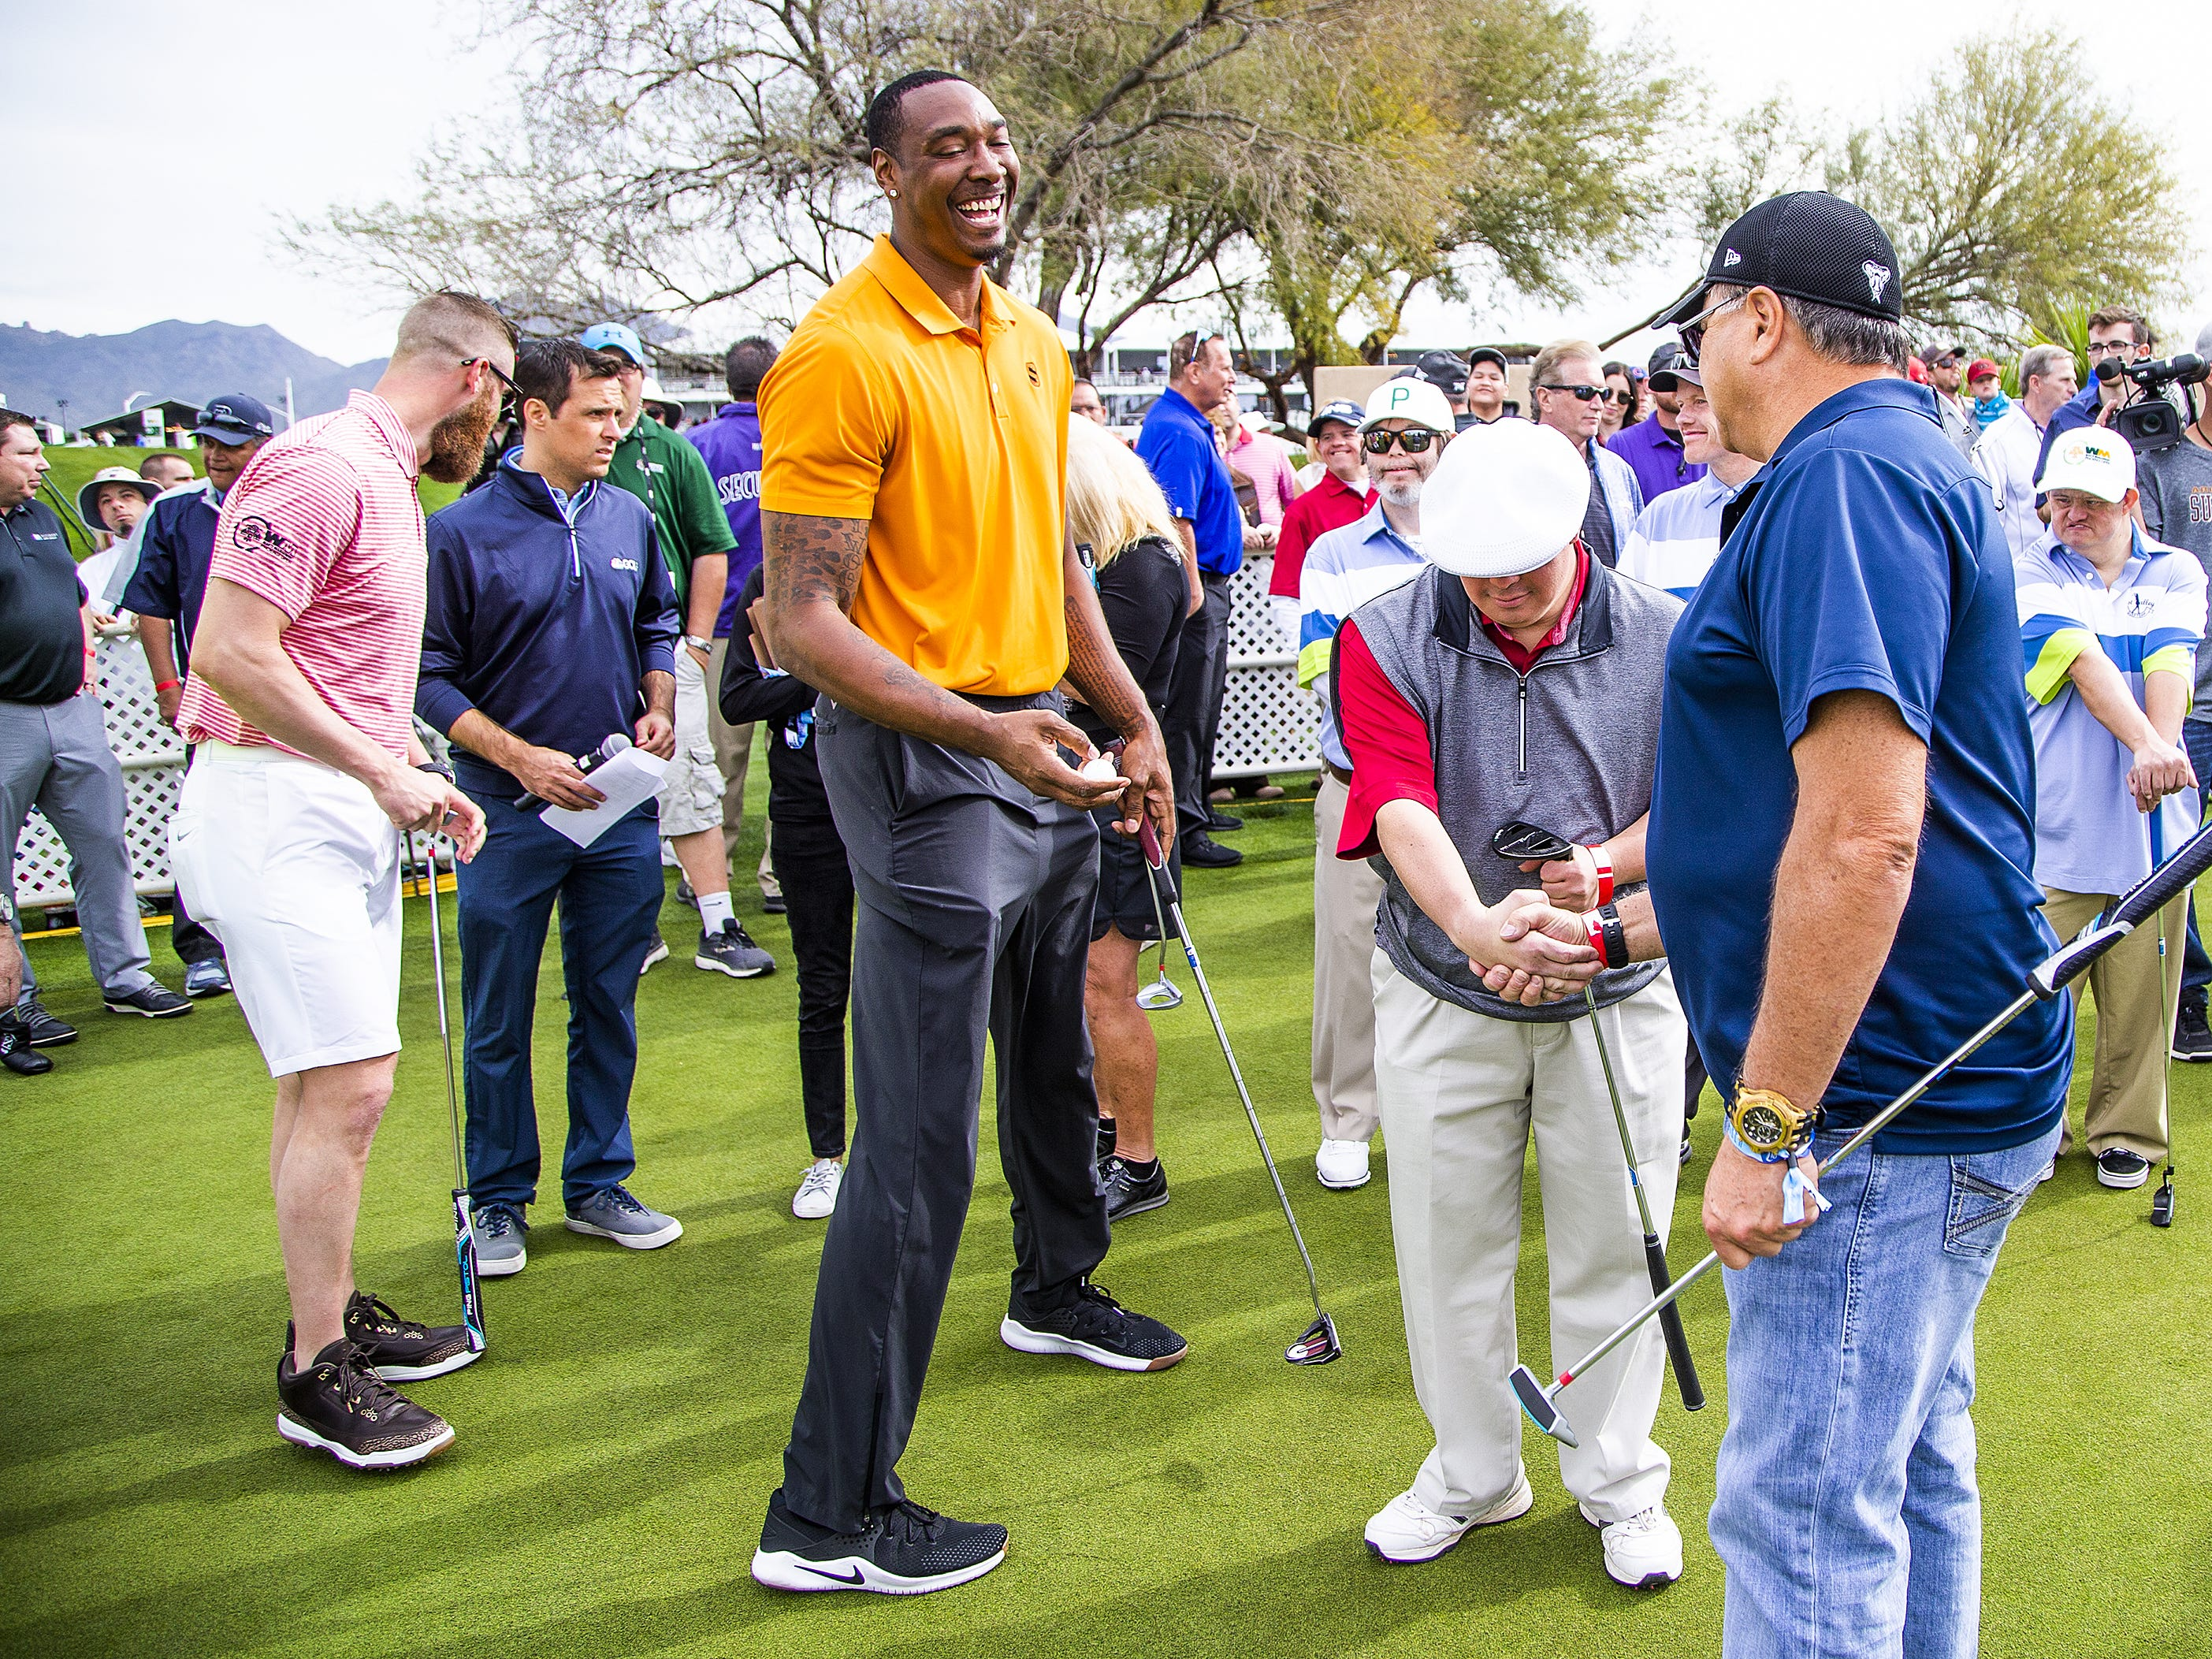 Phoenix Suns community ambassador Steven Hunter, orange shirt, smiles during the San Tan Ford Special Olympics Open at the Waste Management Phoenix Open at the TPC Scottsdale, Tuesday, January 29, 2019.